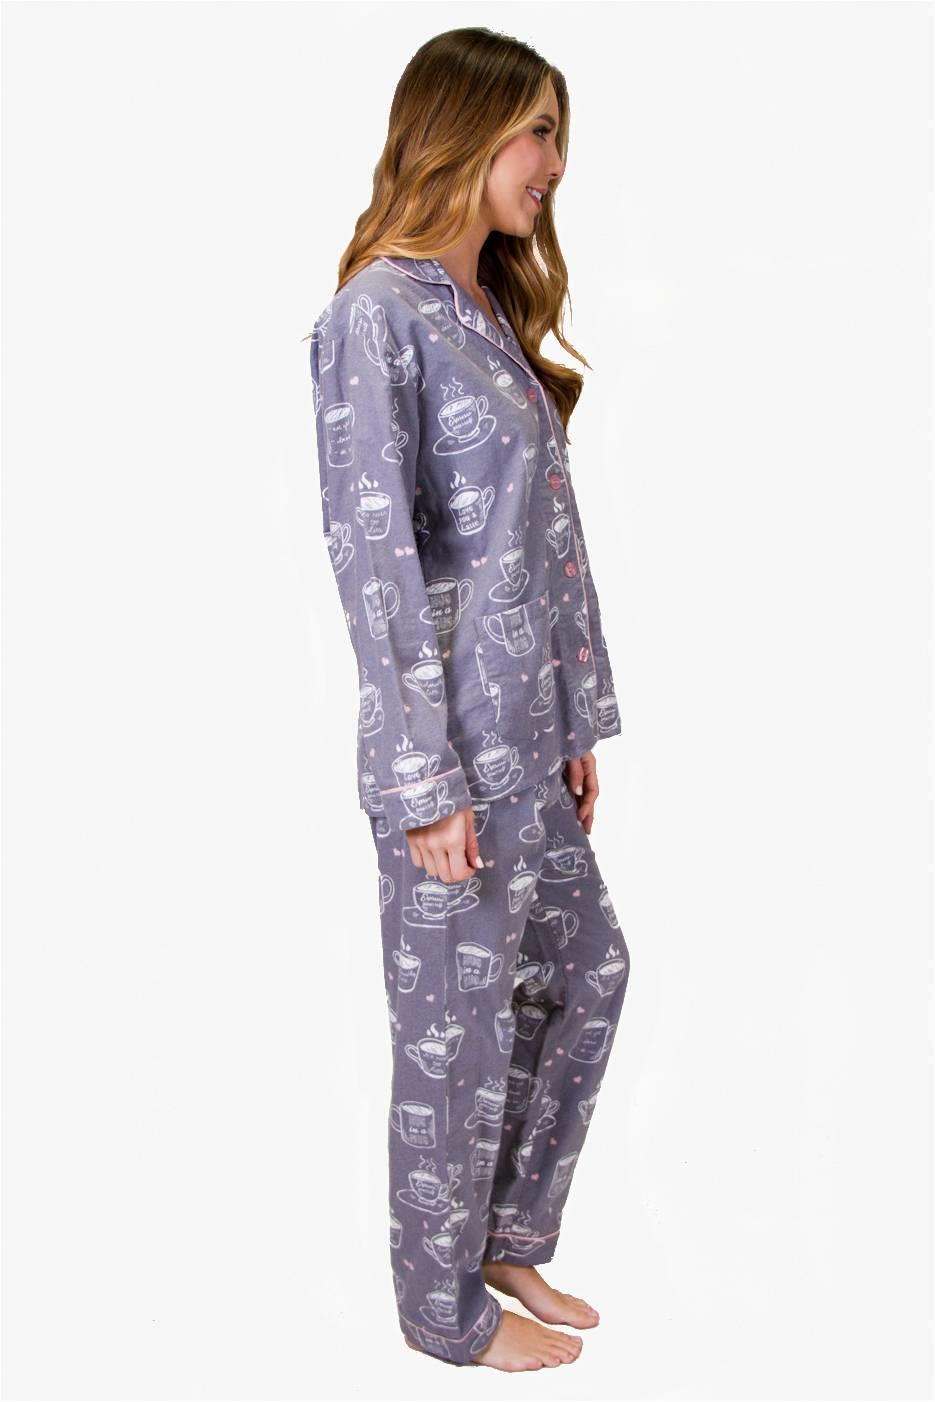 PJ SALVAGE FLANNEL BOYFRIEND PJS COFFEE TIME